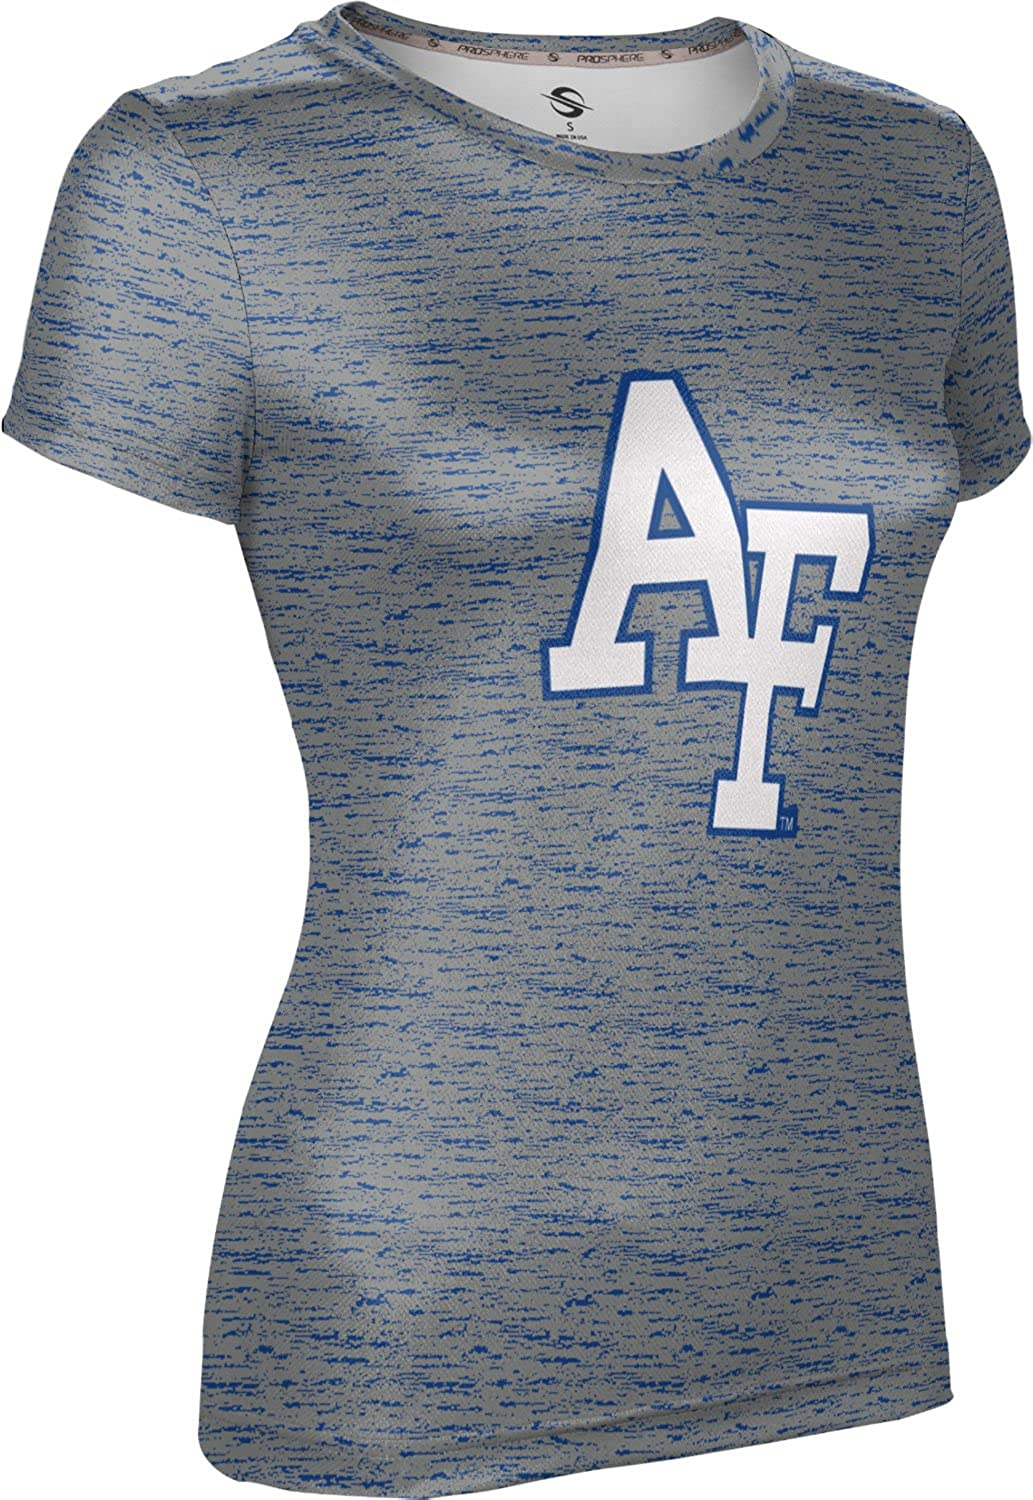 a3644051bc5 U.S. Air Force Academy T-Shirt - Licensed Collegiate Women s Micro-Poly  Fabric Apparel